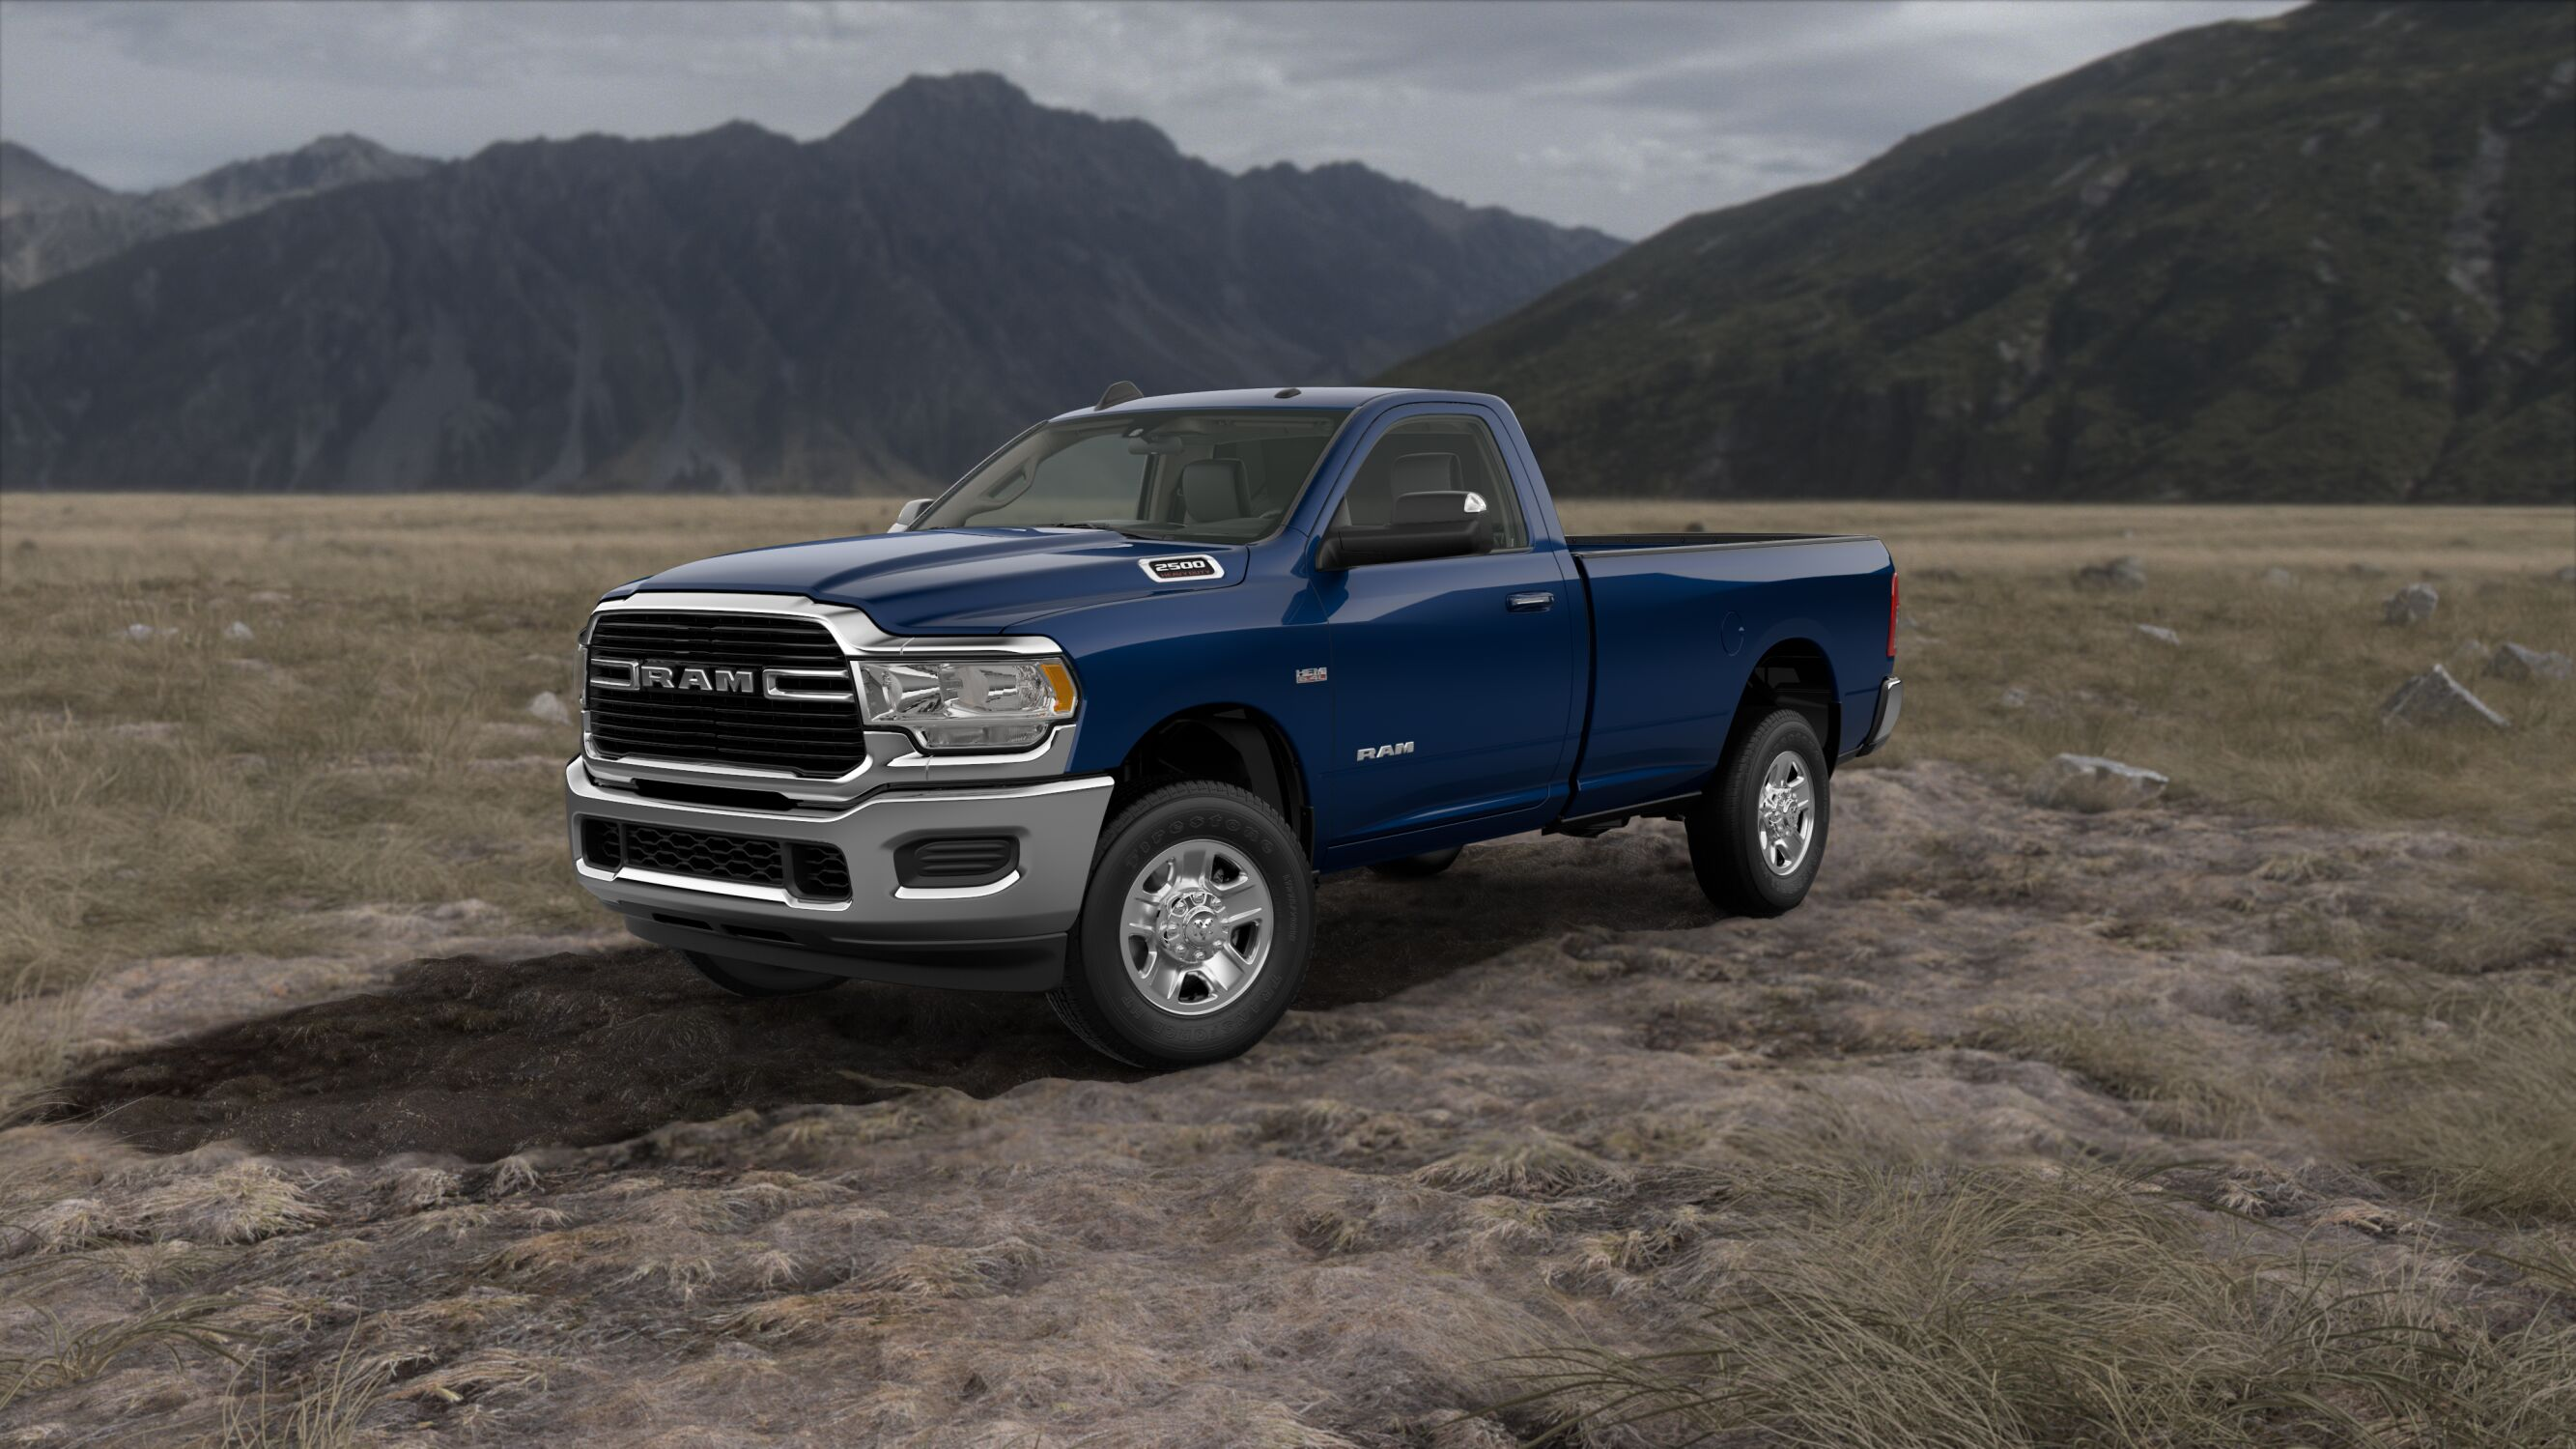 2019 Ram 2500 Big Horn Patriot Blue Exterior Front Picture